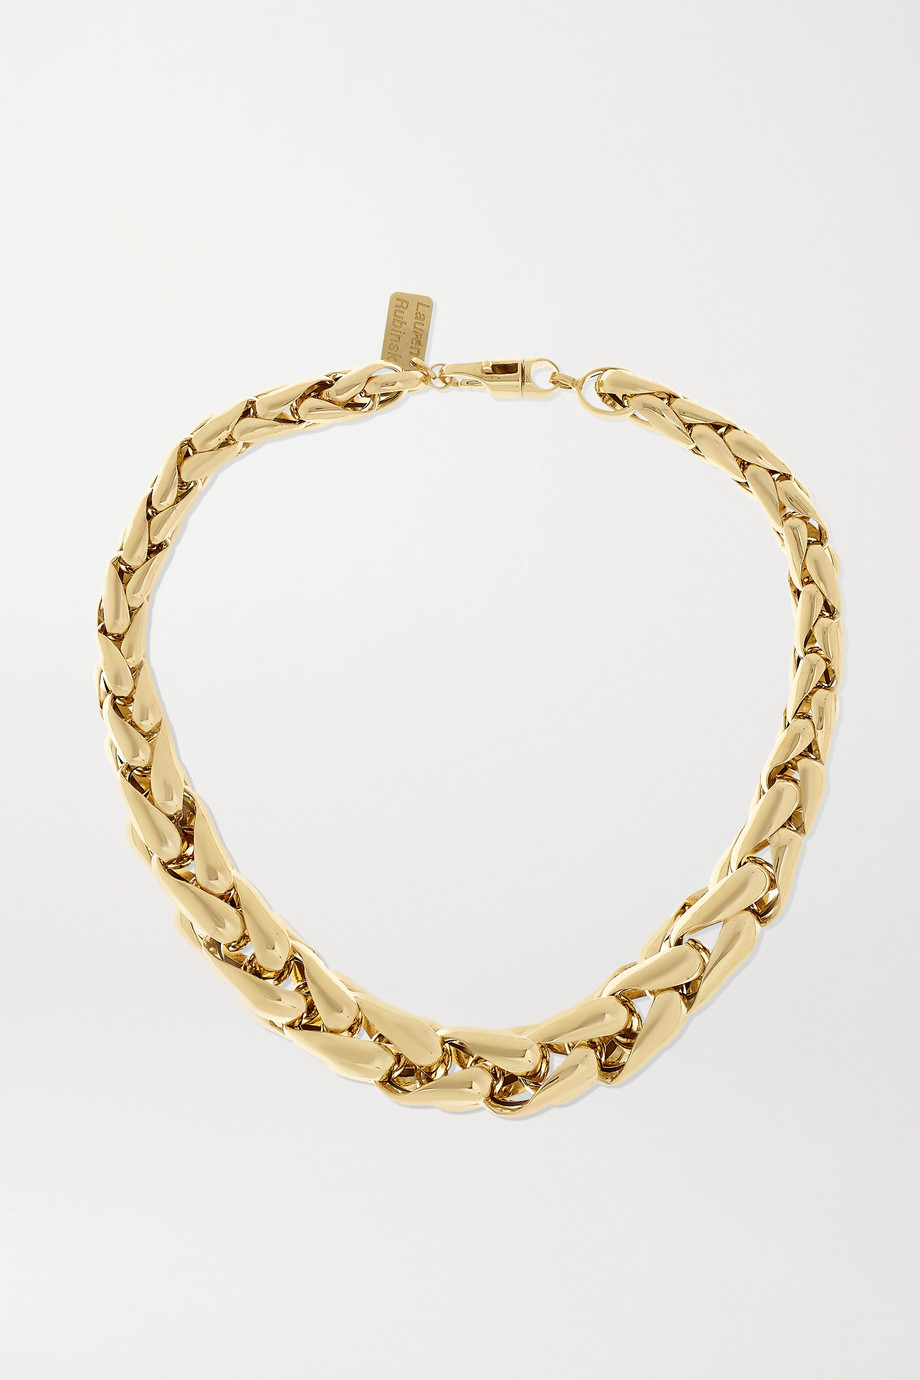 Lauren Rubinski Collier en or 14 carats Large